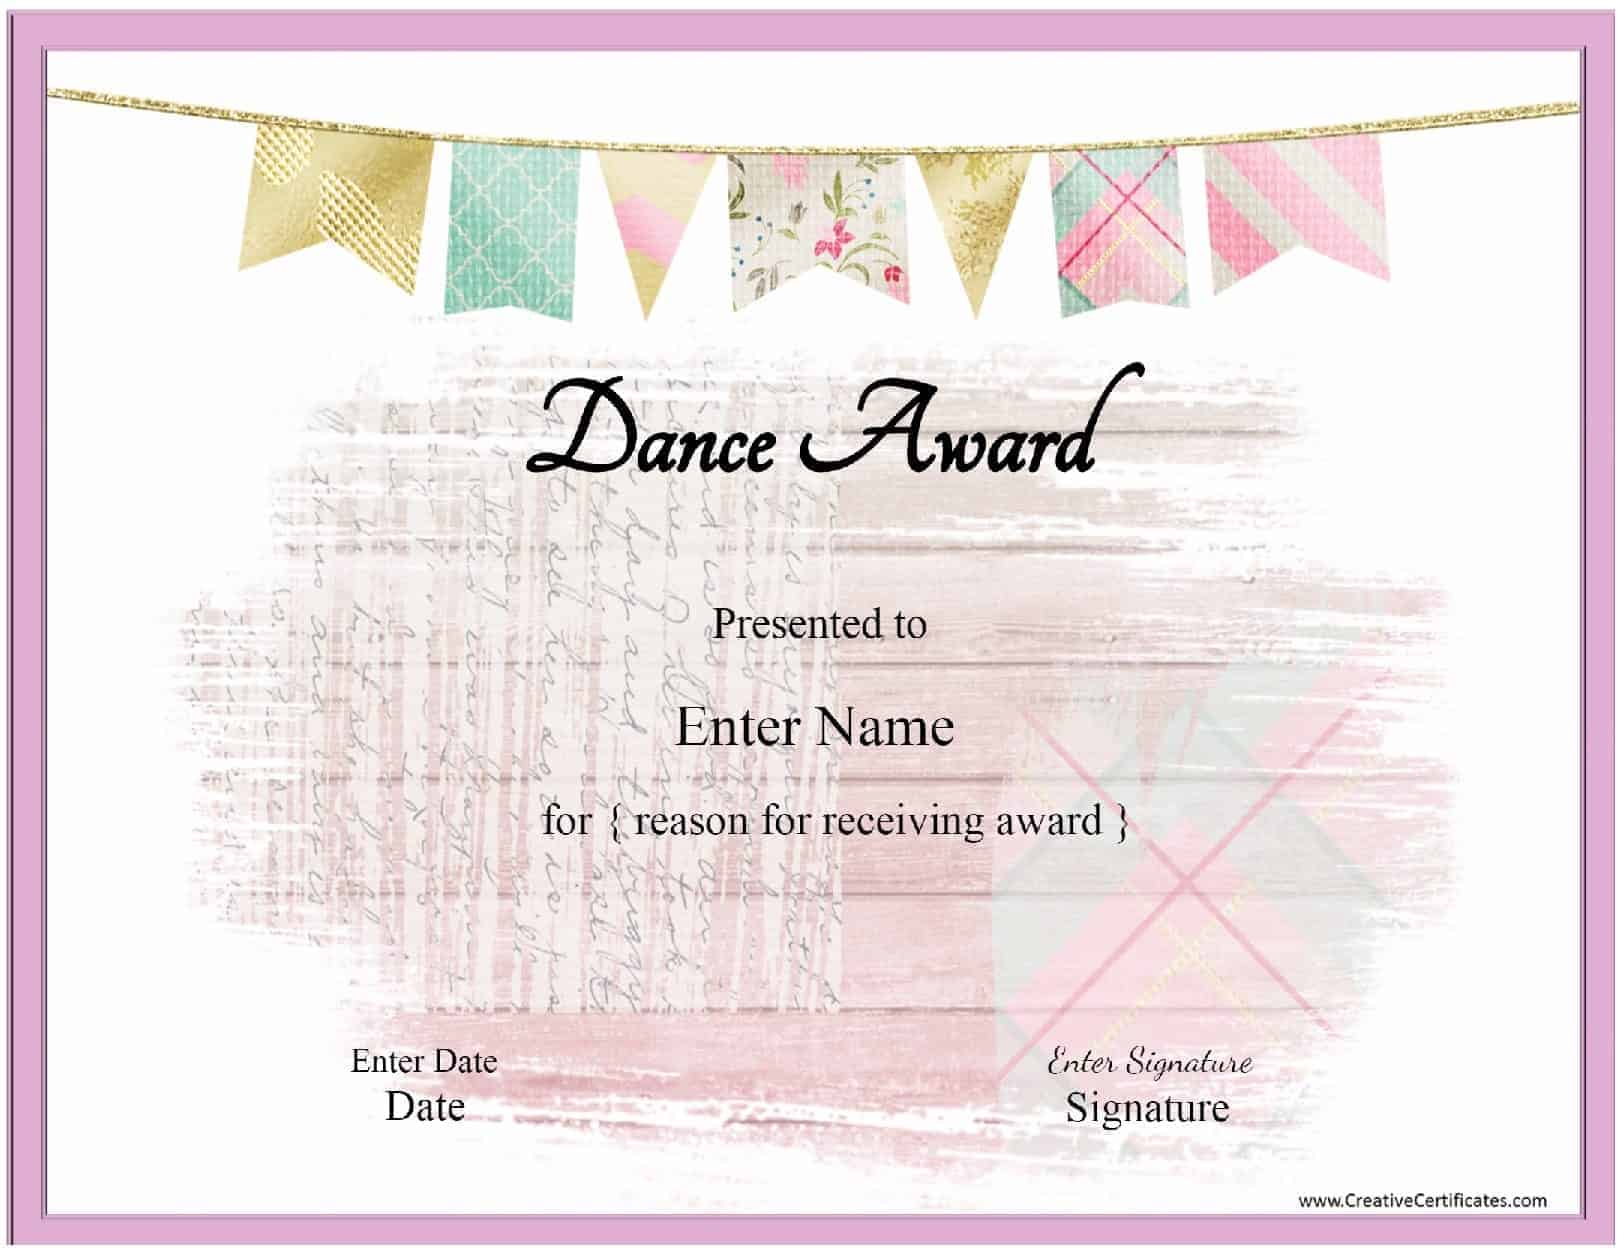 dance award templates  Free Dance Certificate Template - Customizable and Printable